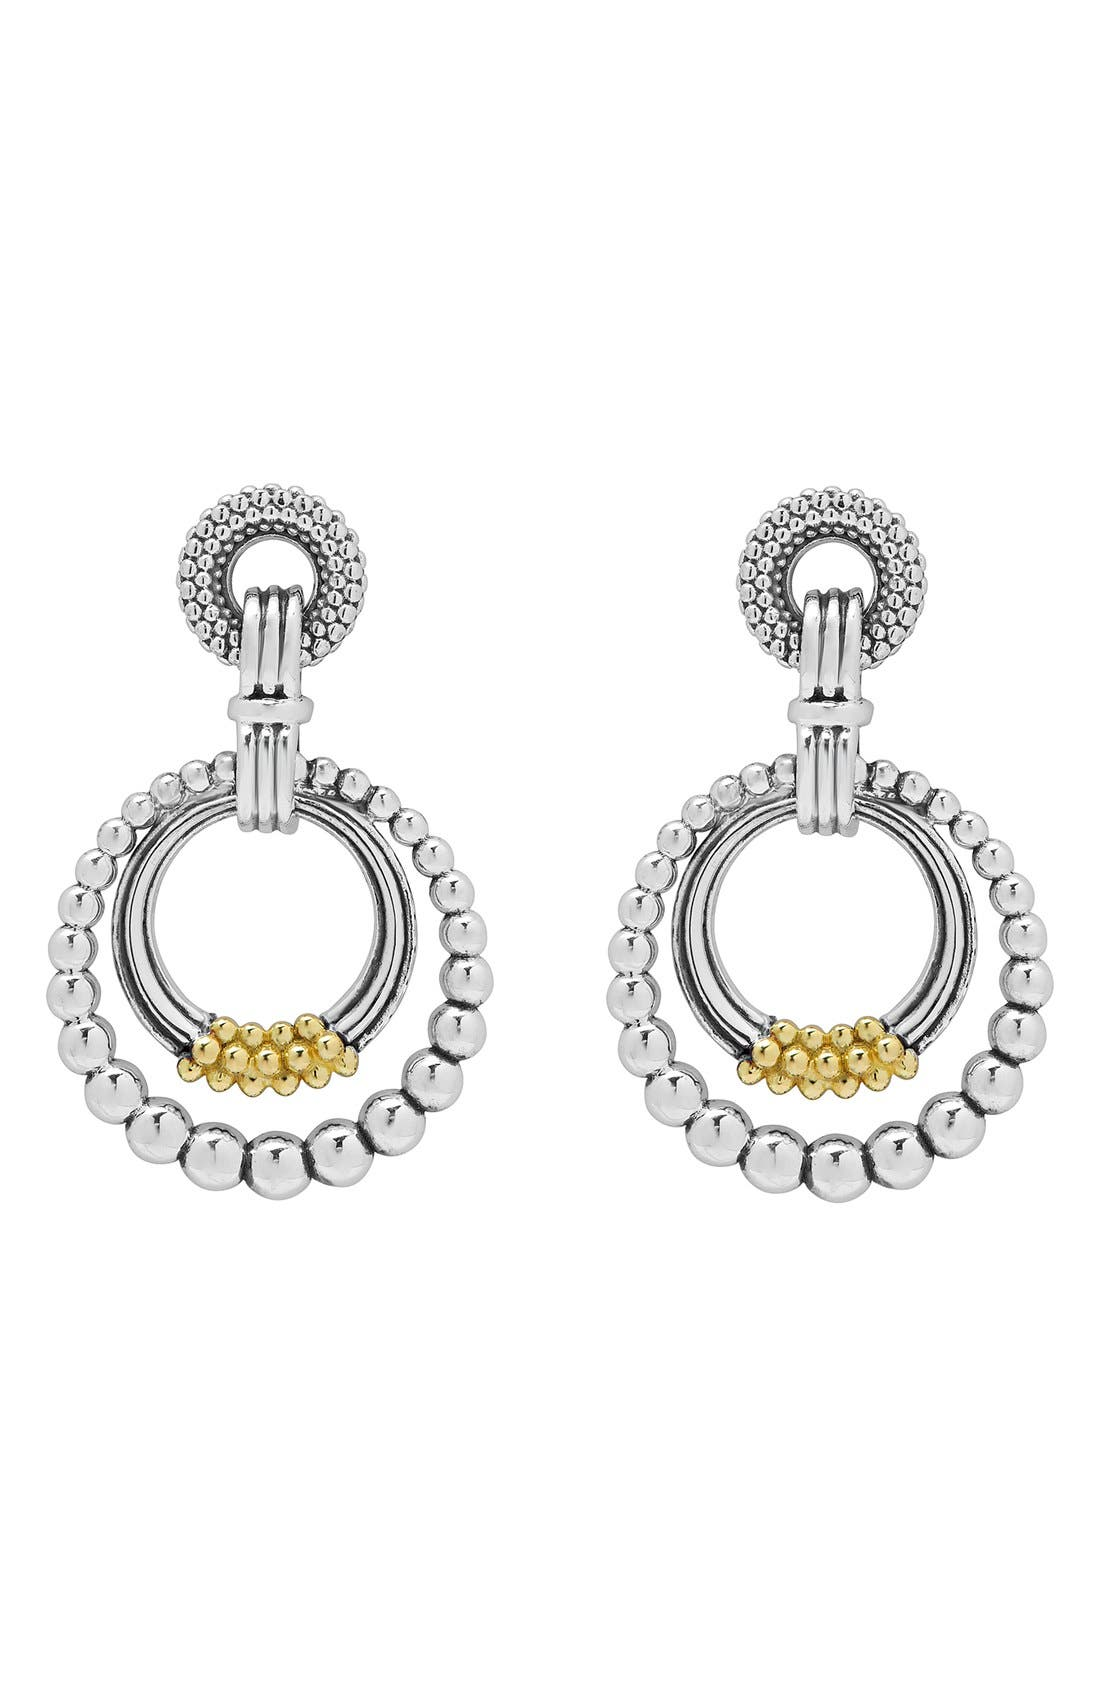 Caviar 'Superfine' Two-Tone Door Knocker Earrings,                             Alternate thumbnail 3, color,                             040